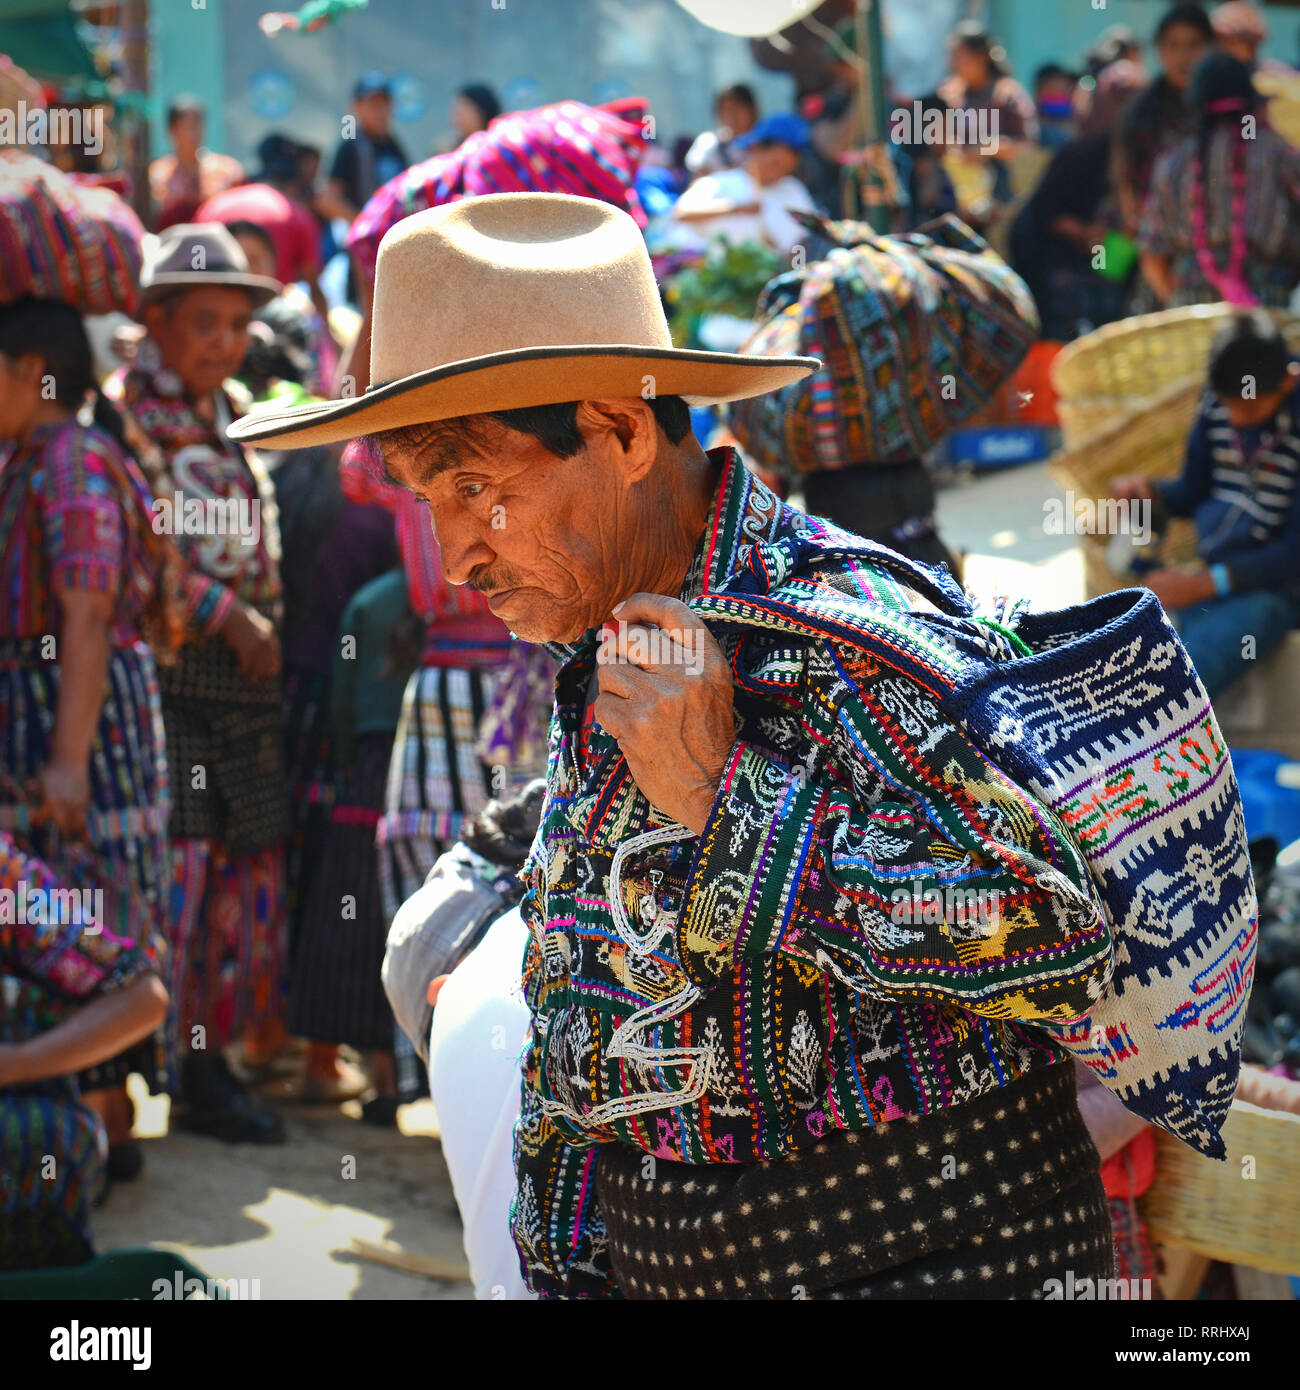 A portrait of a man in traditional clothing on the market of Solola with maya people in the background buying and selling goods, Guatemala. - Stock Image